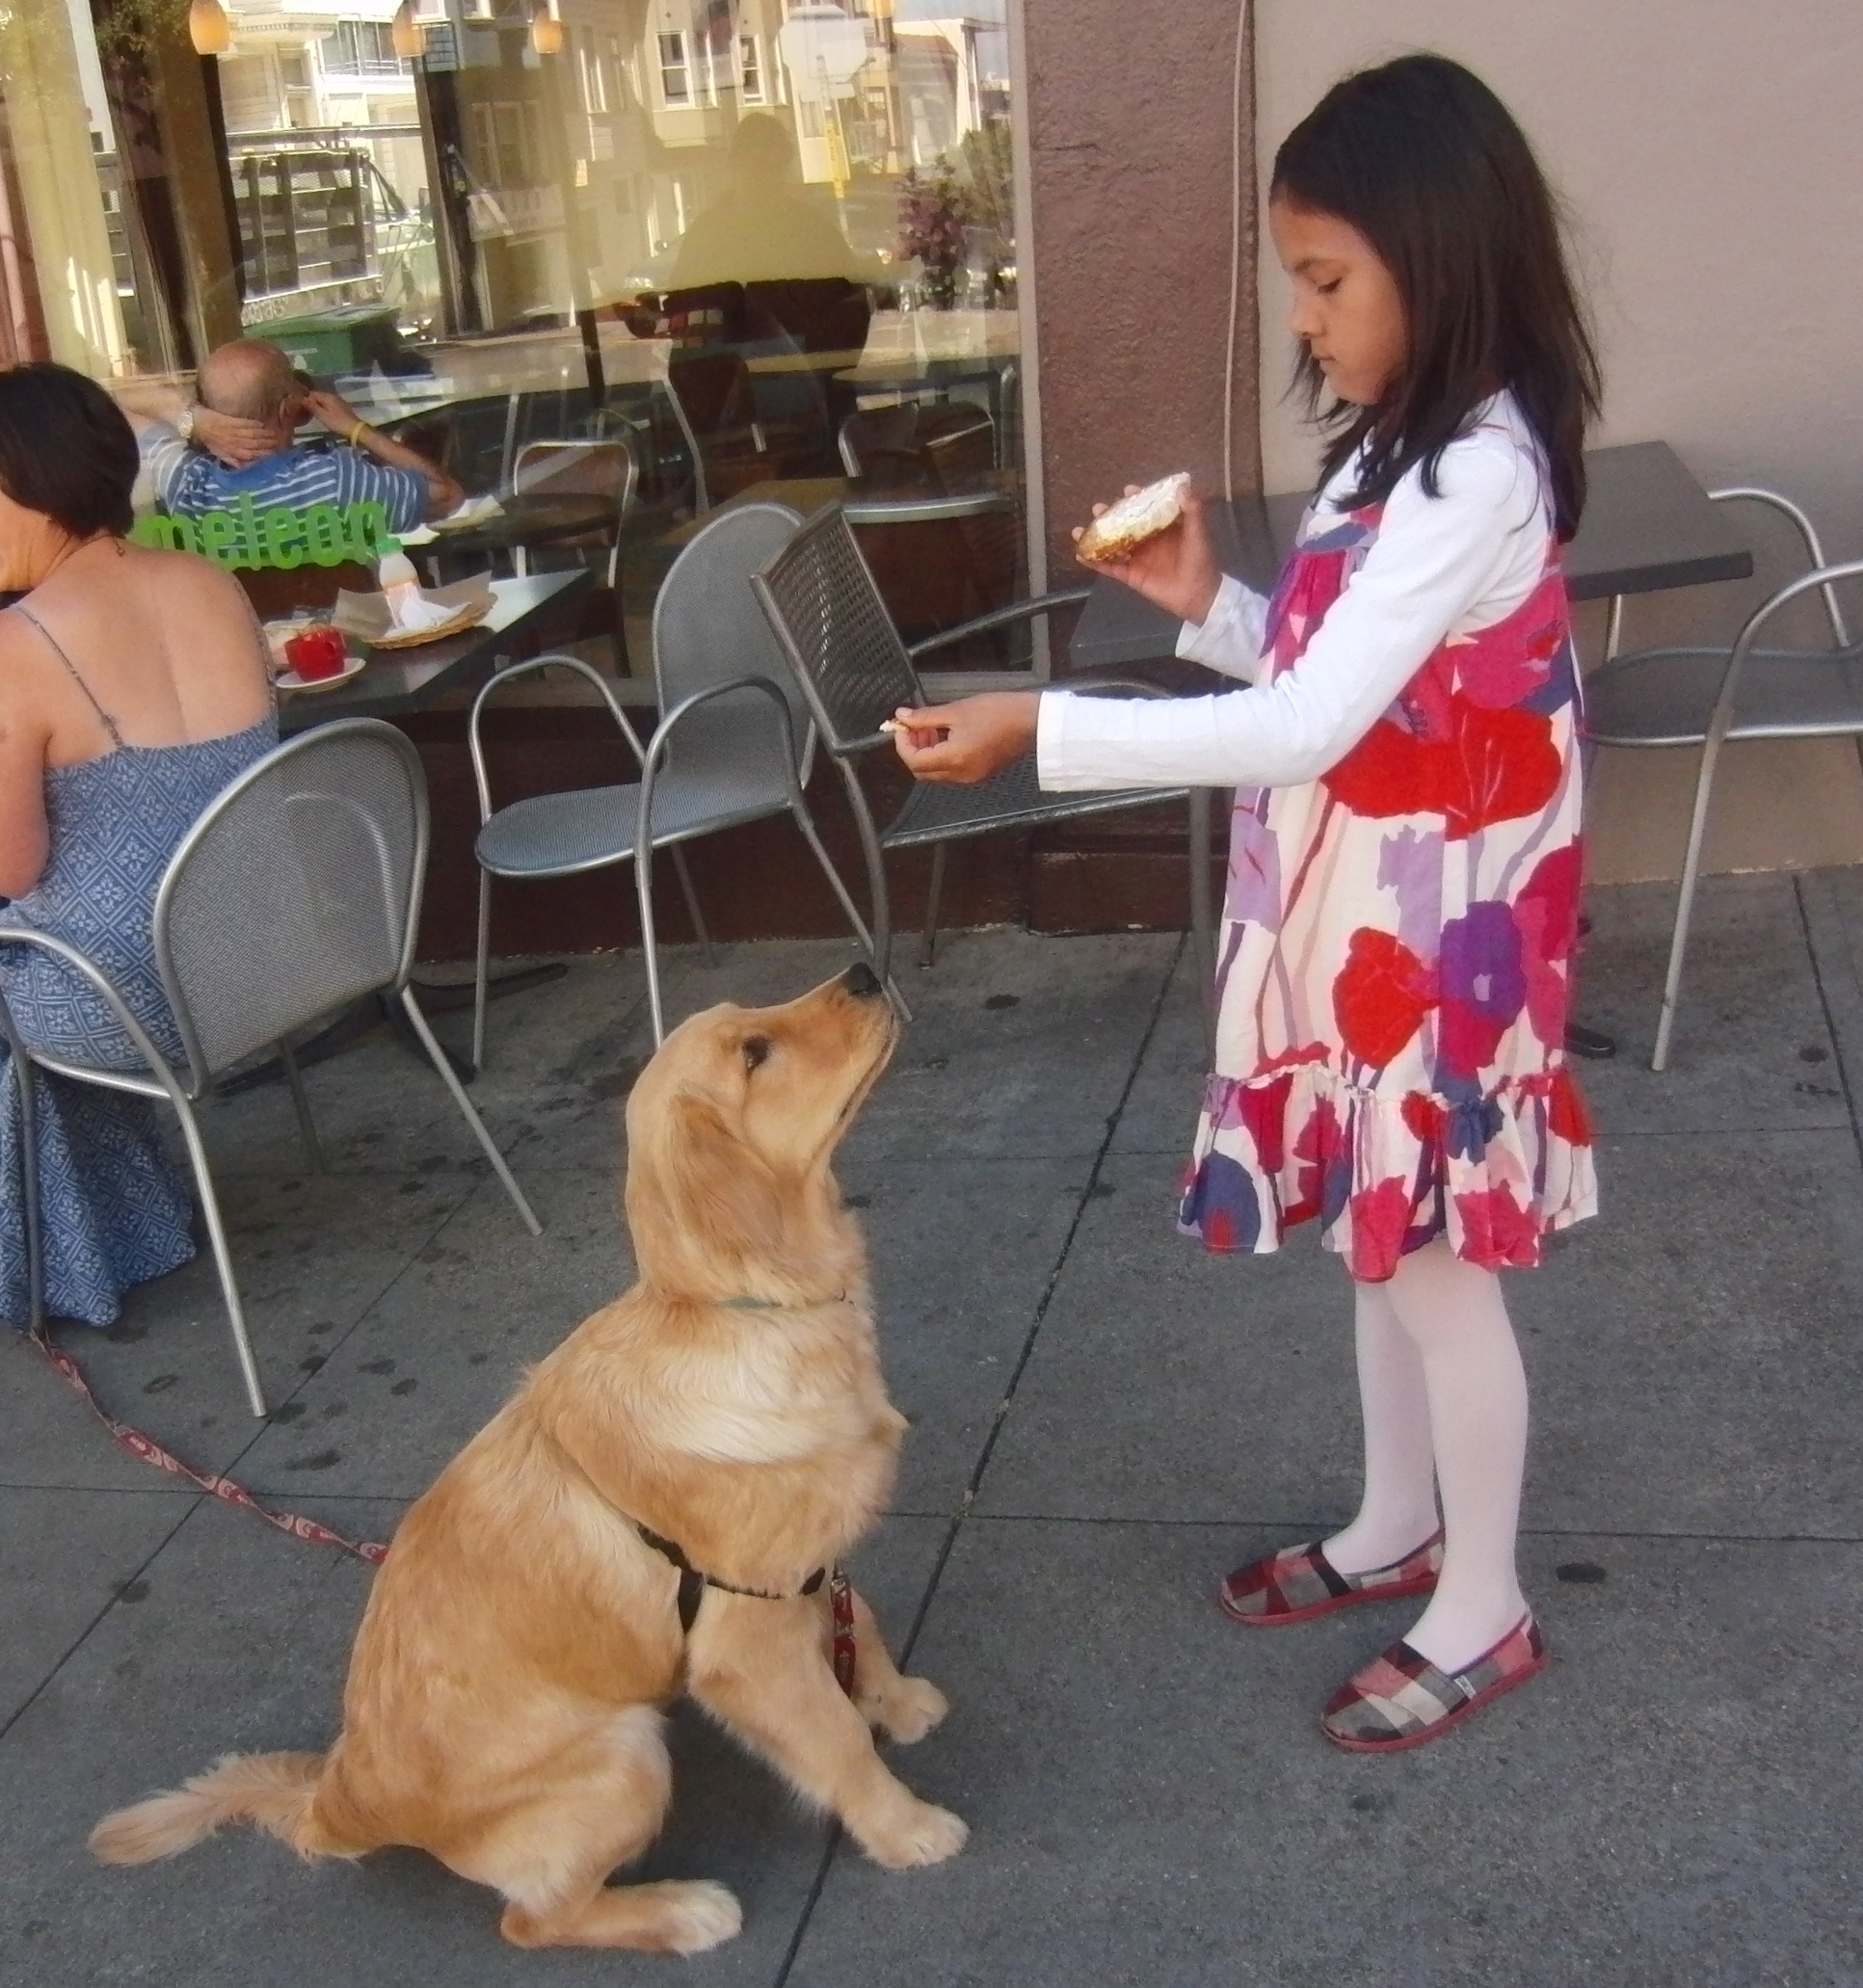 Little Girl Feeding 6-Month-Old Golden Retriever